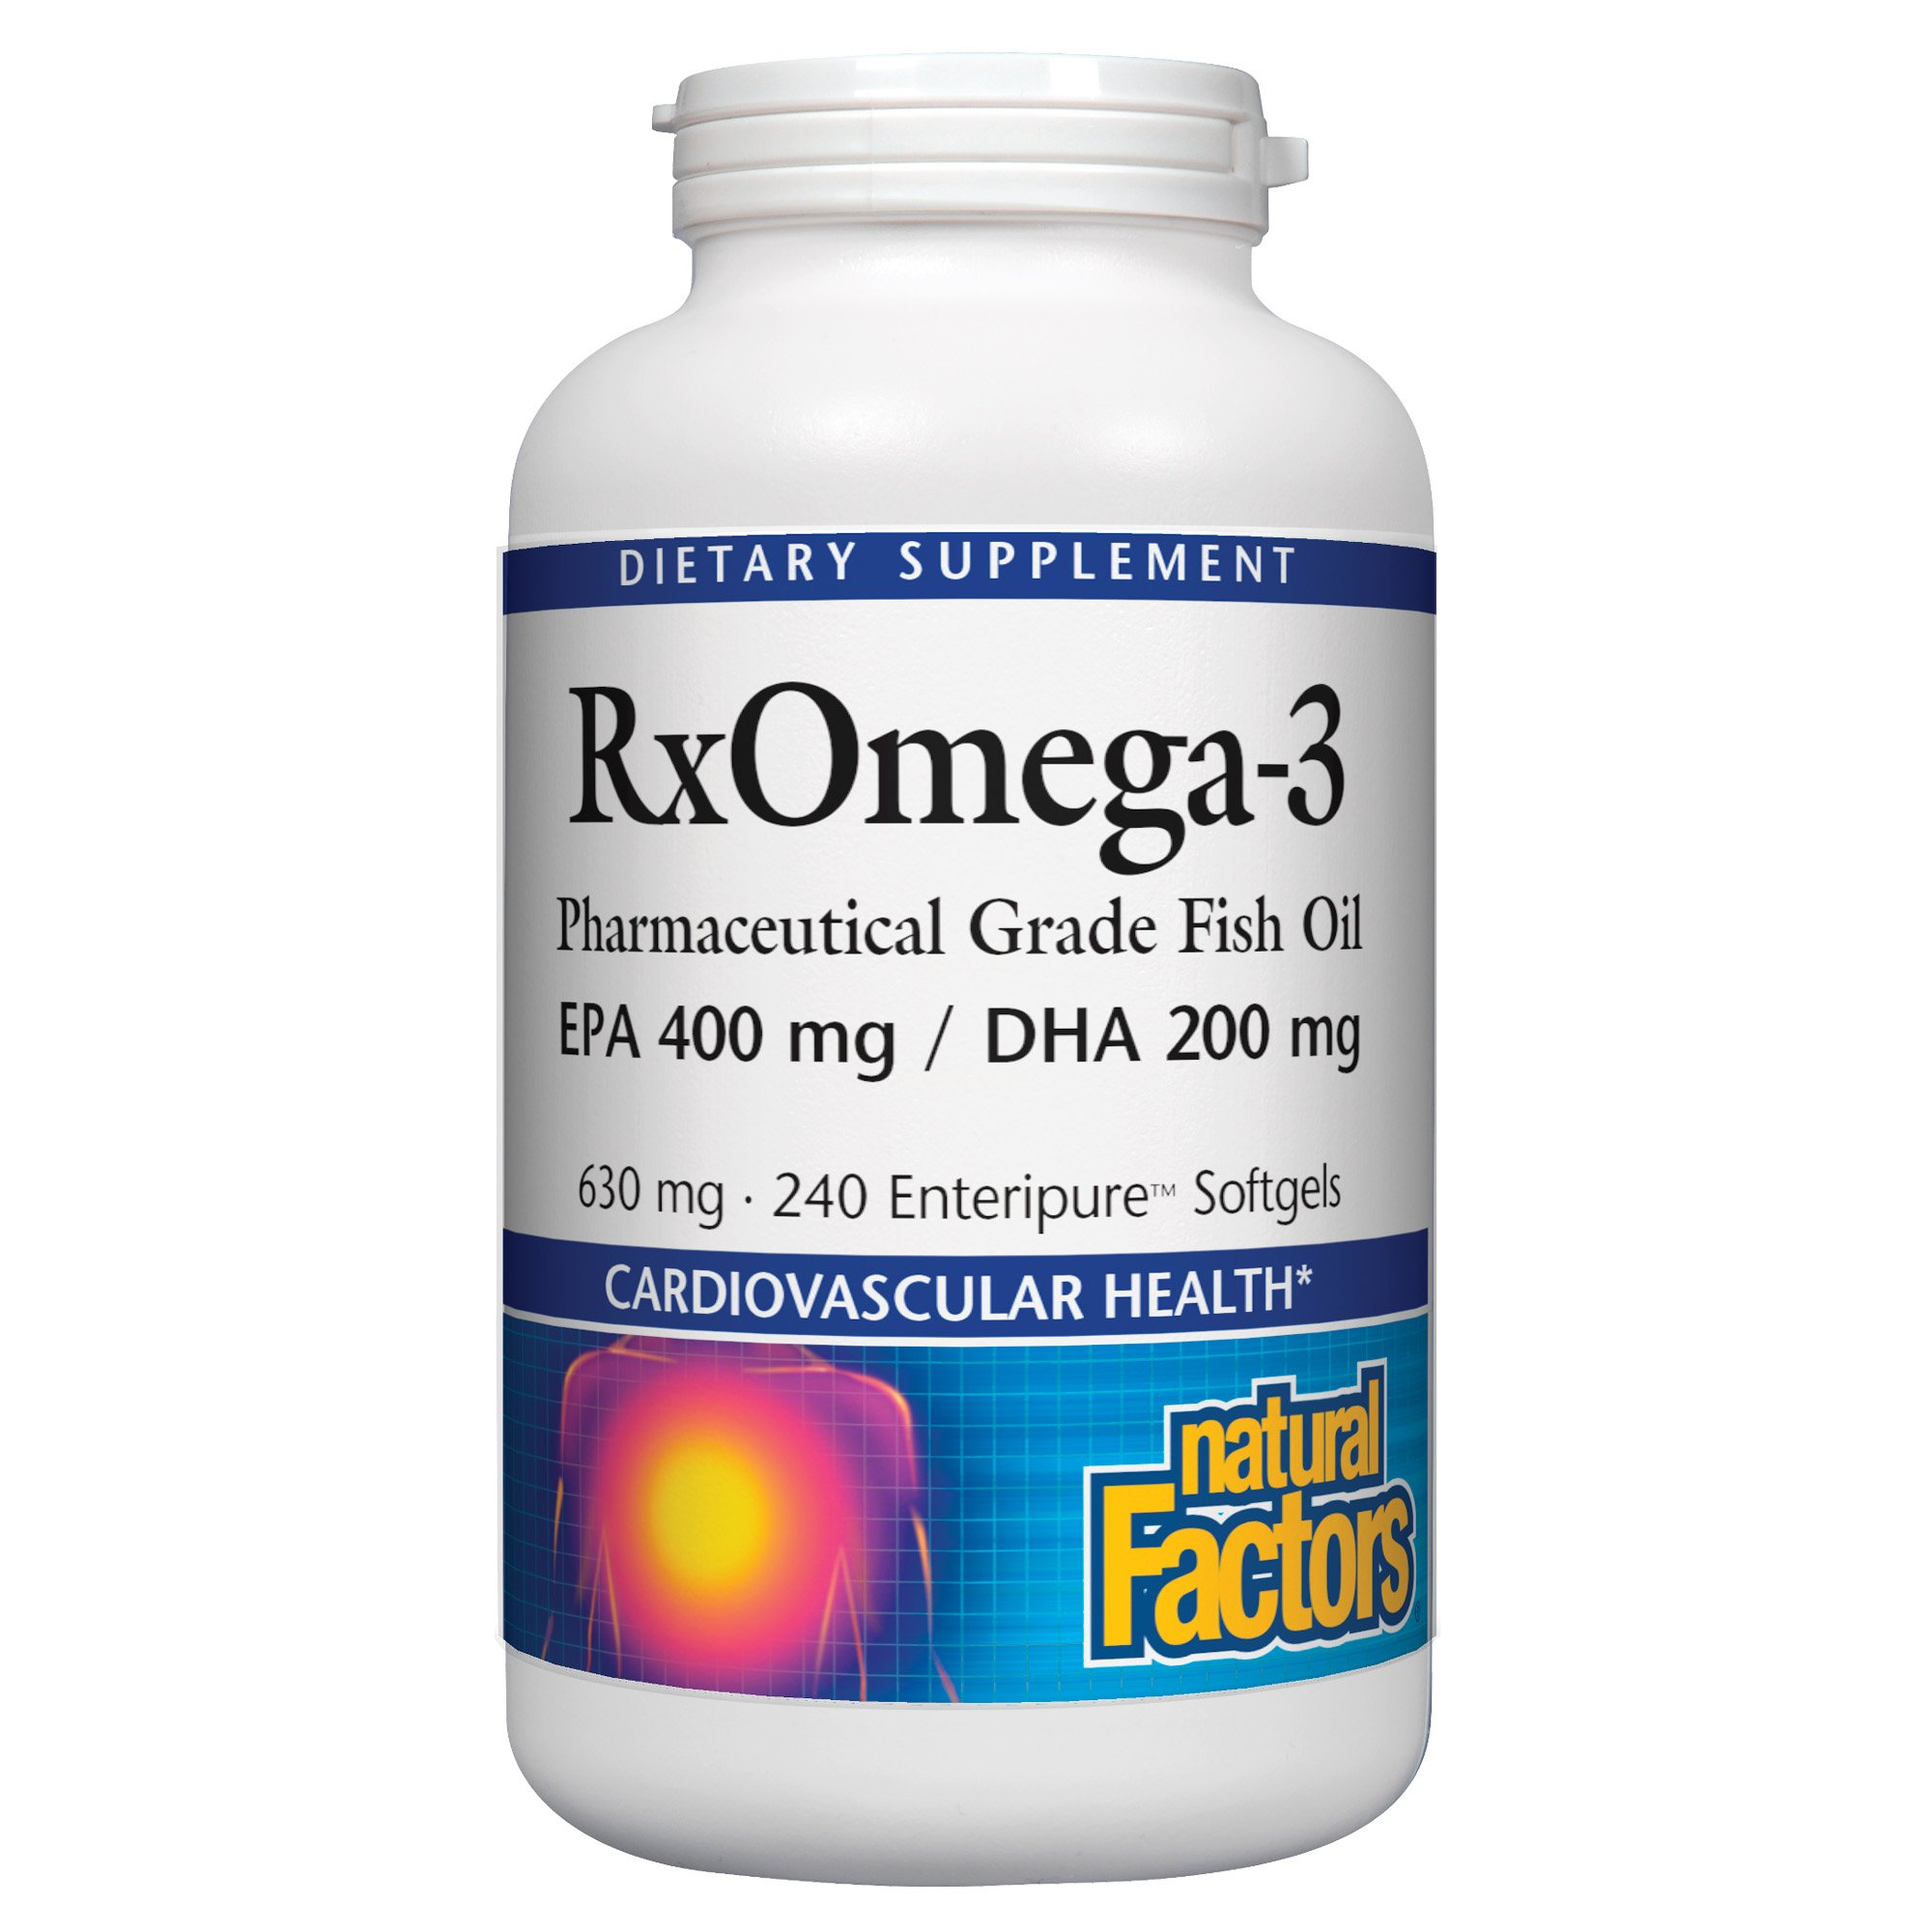 Natural Factors - RxOmega-3 EPA 400mg/DHA 200mg, Pharmaceutical Grade Fish Oil, 240 Soft Gels